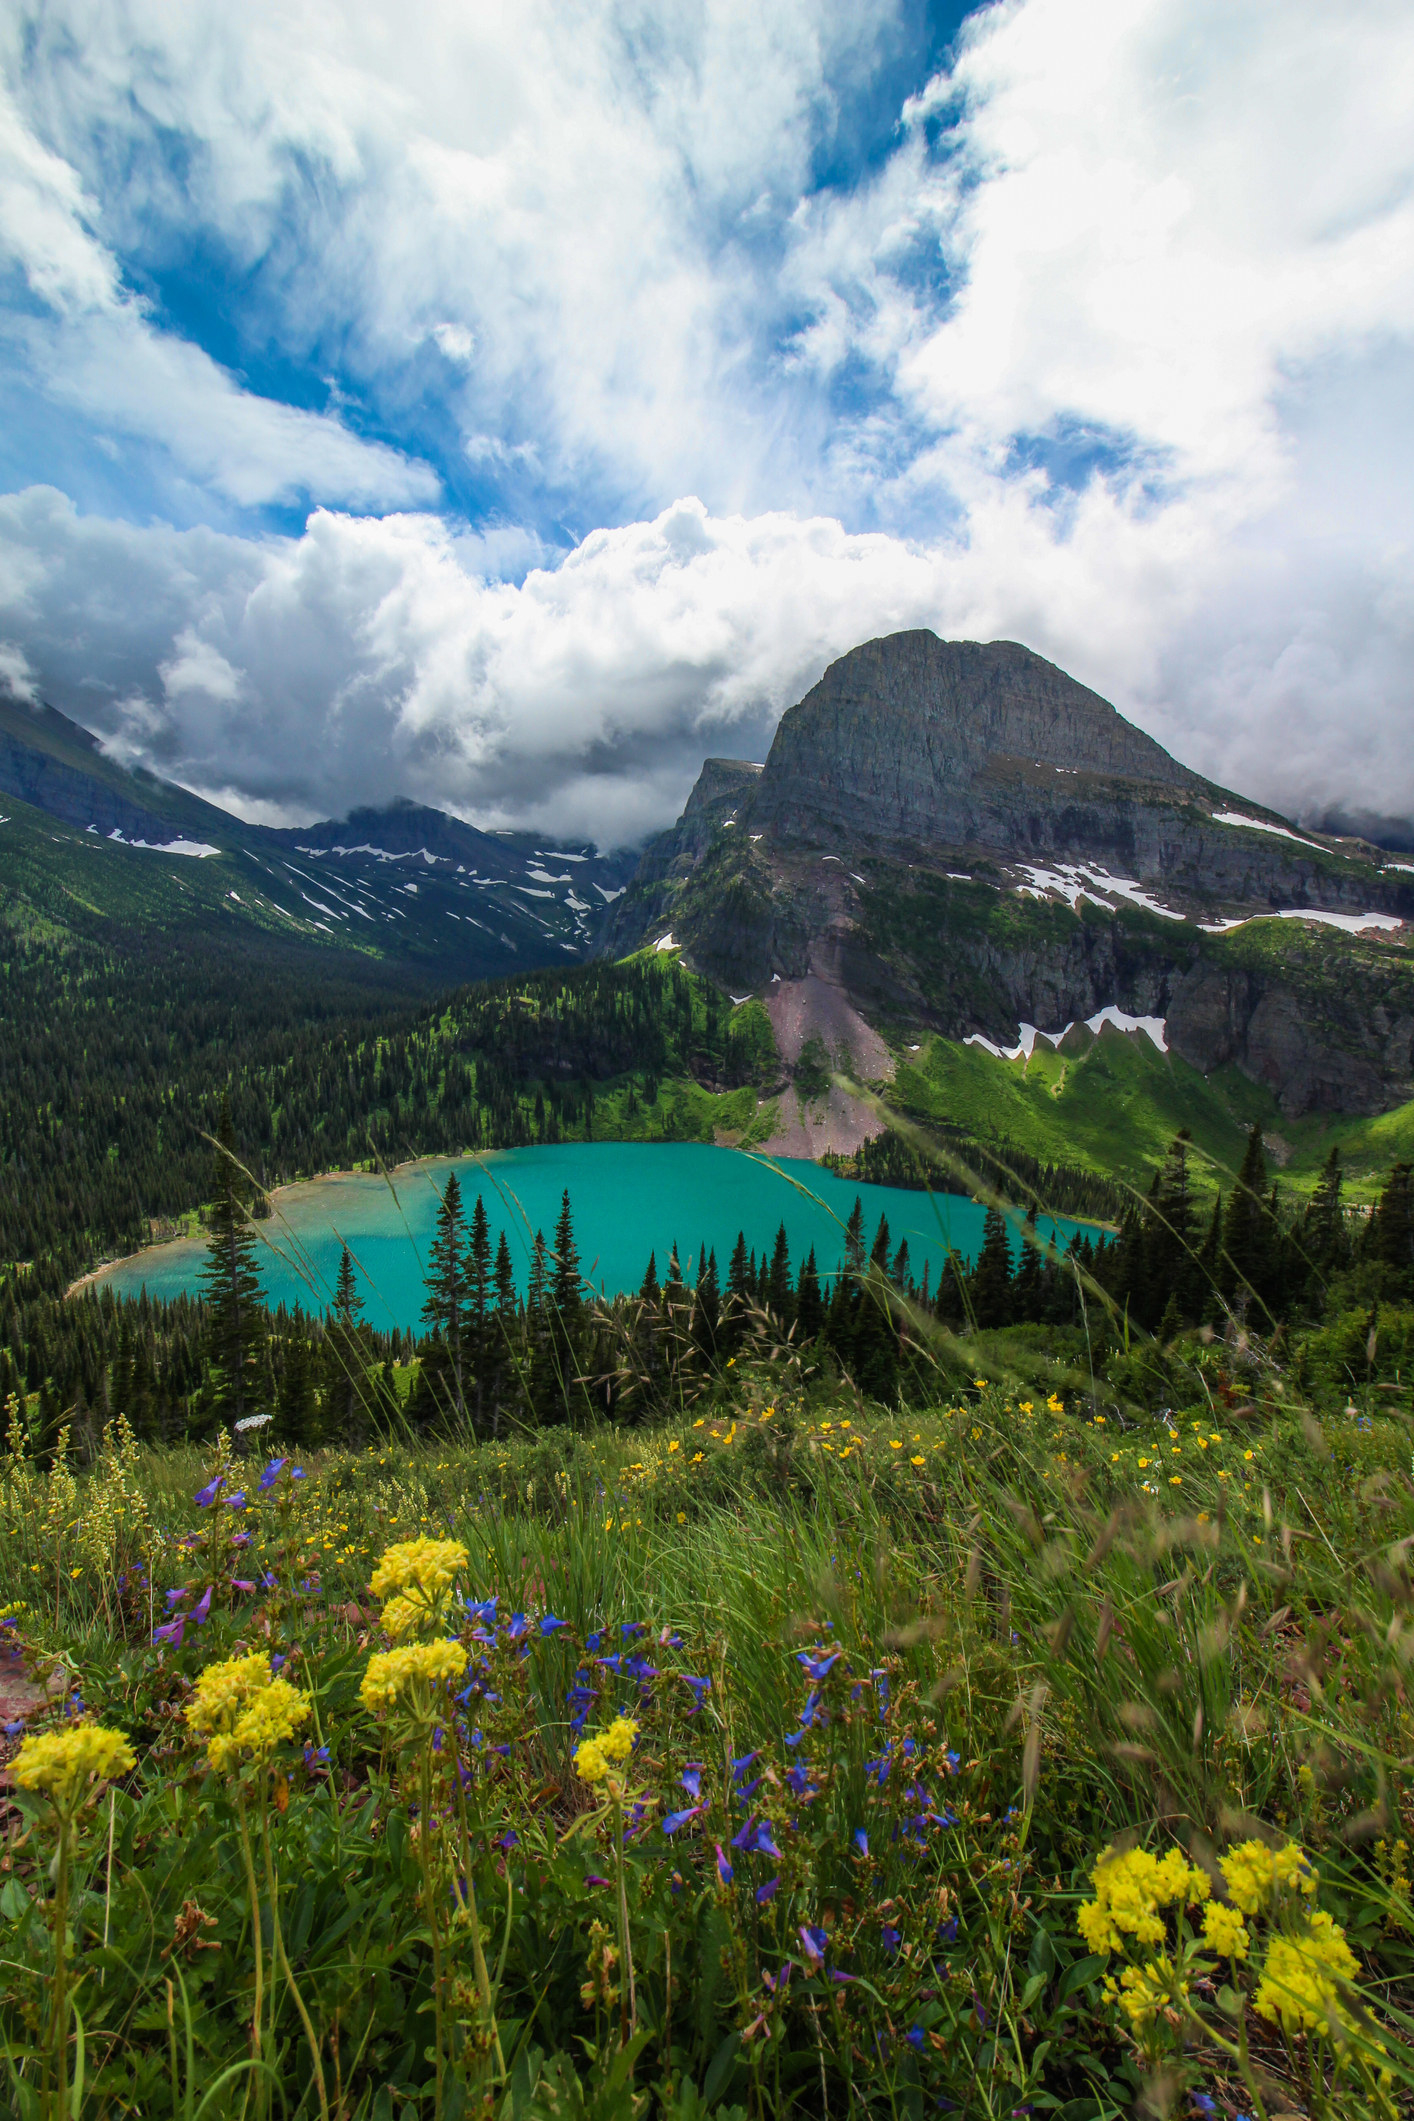 The view of the turquoise Grinnell Lake with wildflowers in the foreground